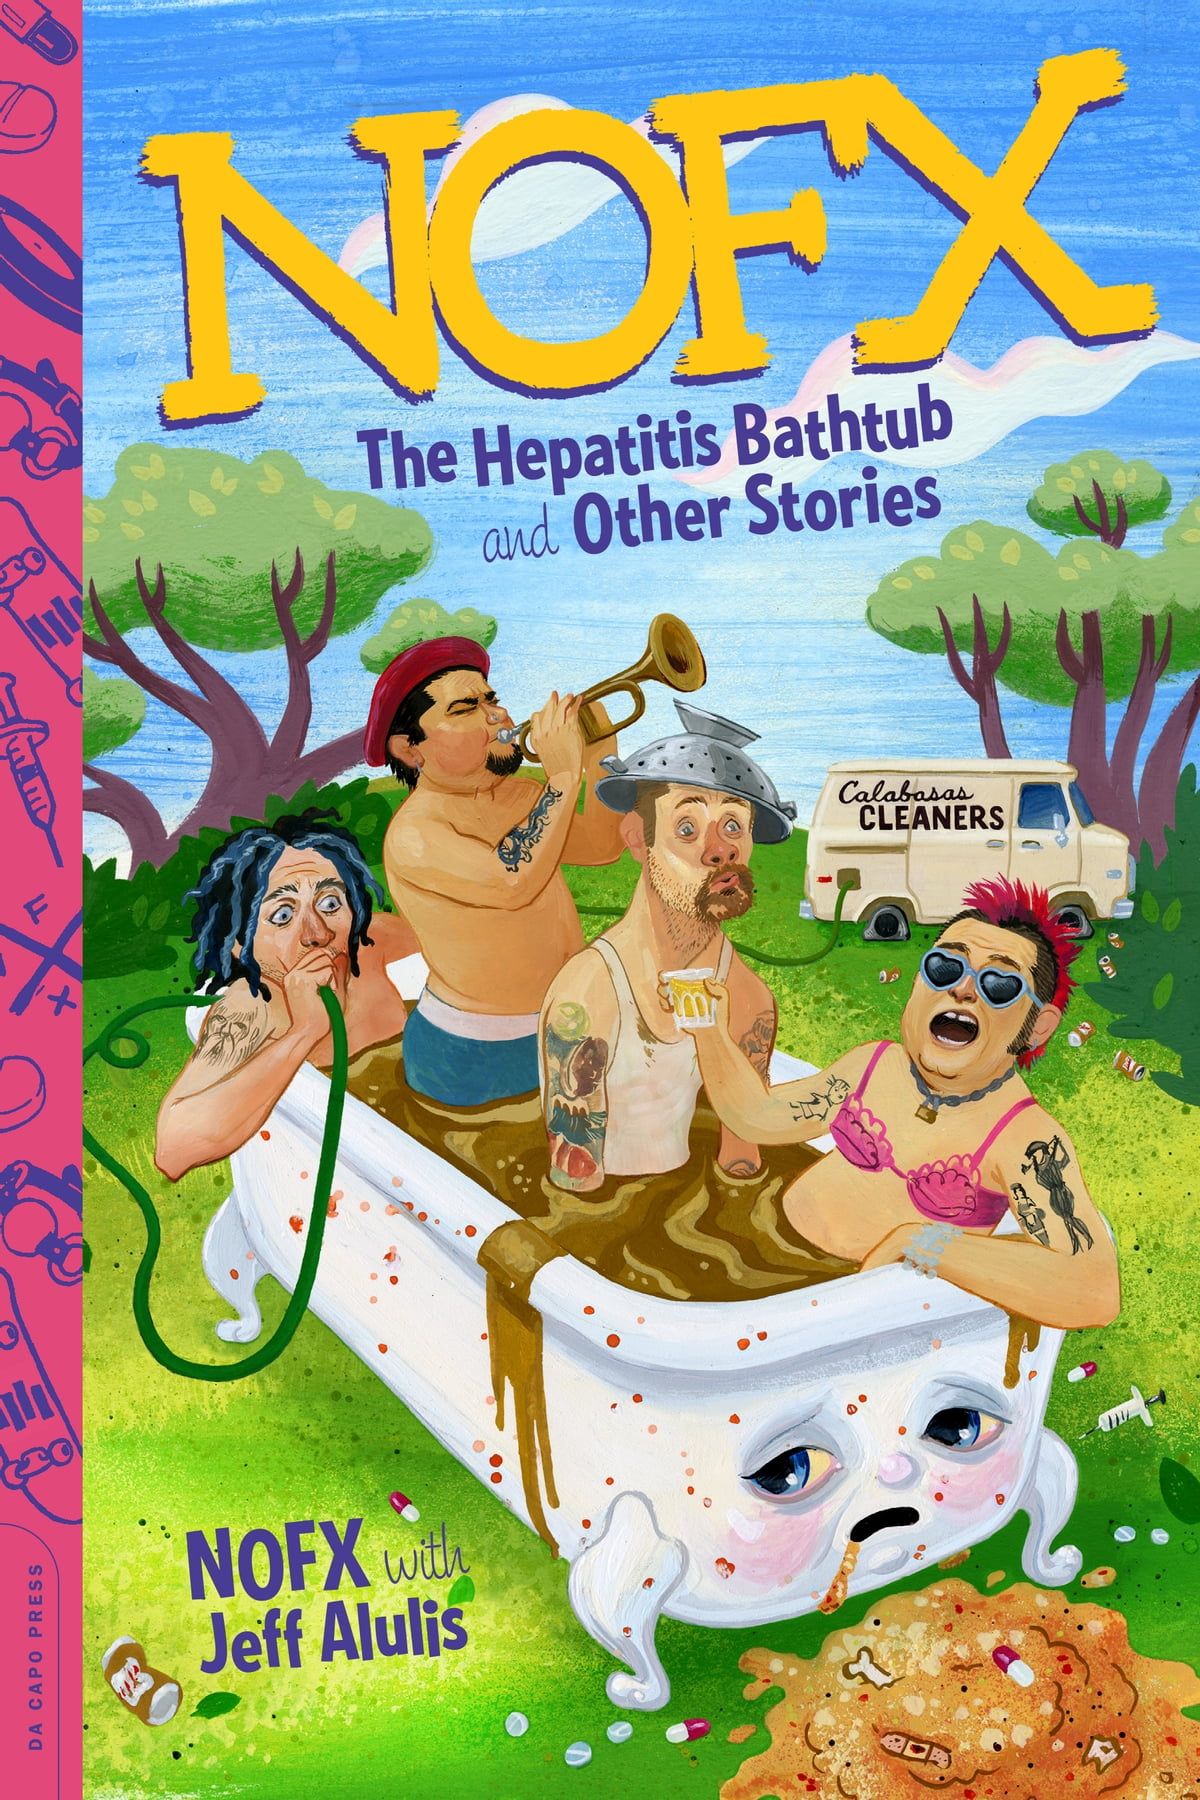 Nofx  The Hepatitis Bathtub And Other Stories Ebook By Nofx, Jeff Alulis